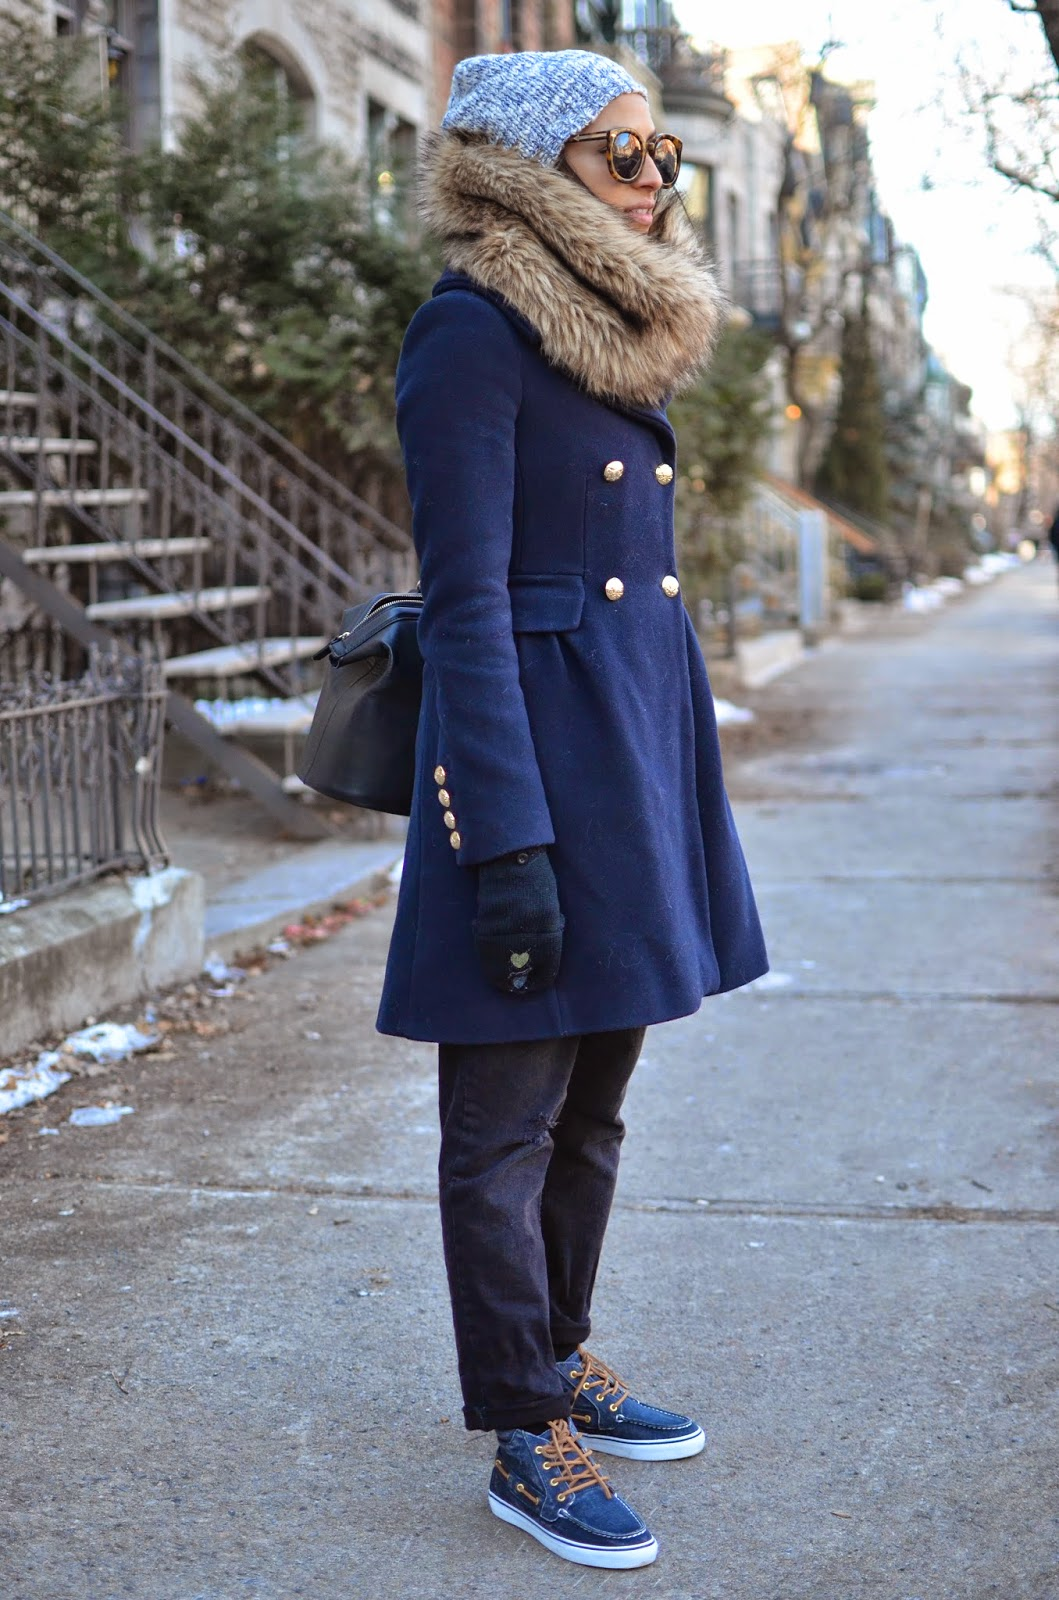 sperry top sider, betty chukka, montreal, snow, SF style in Montreal, snow day outfit